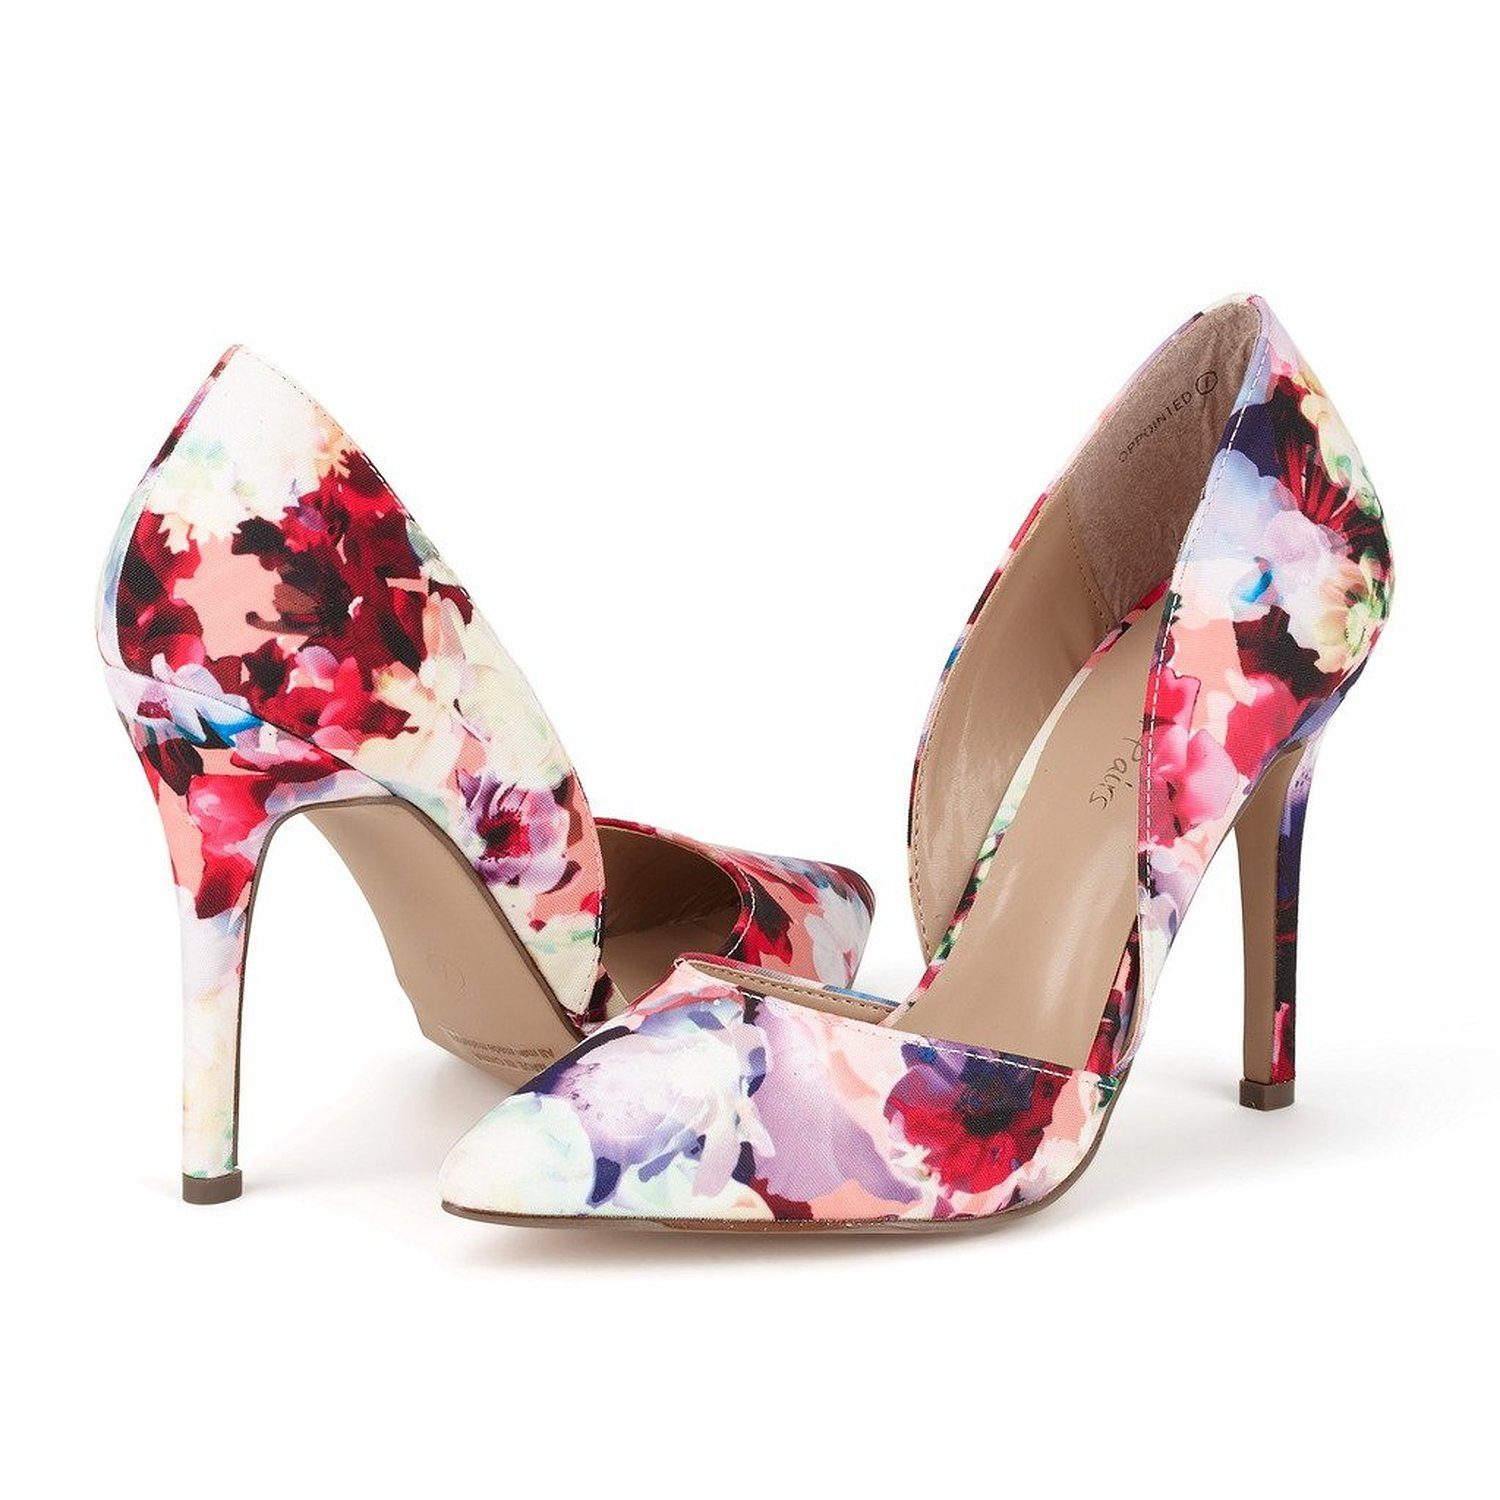 46e459b3e50e3 Amazon.com | DREAM PAIRS OPPOINTED Women's D'Orsay Style Pointy Pumps  Classic Stiletto Heel Shoes New Floral Size 5.5 | Pumps